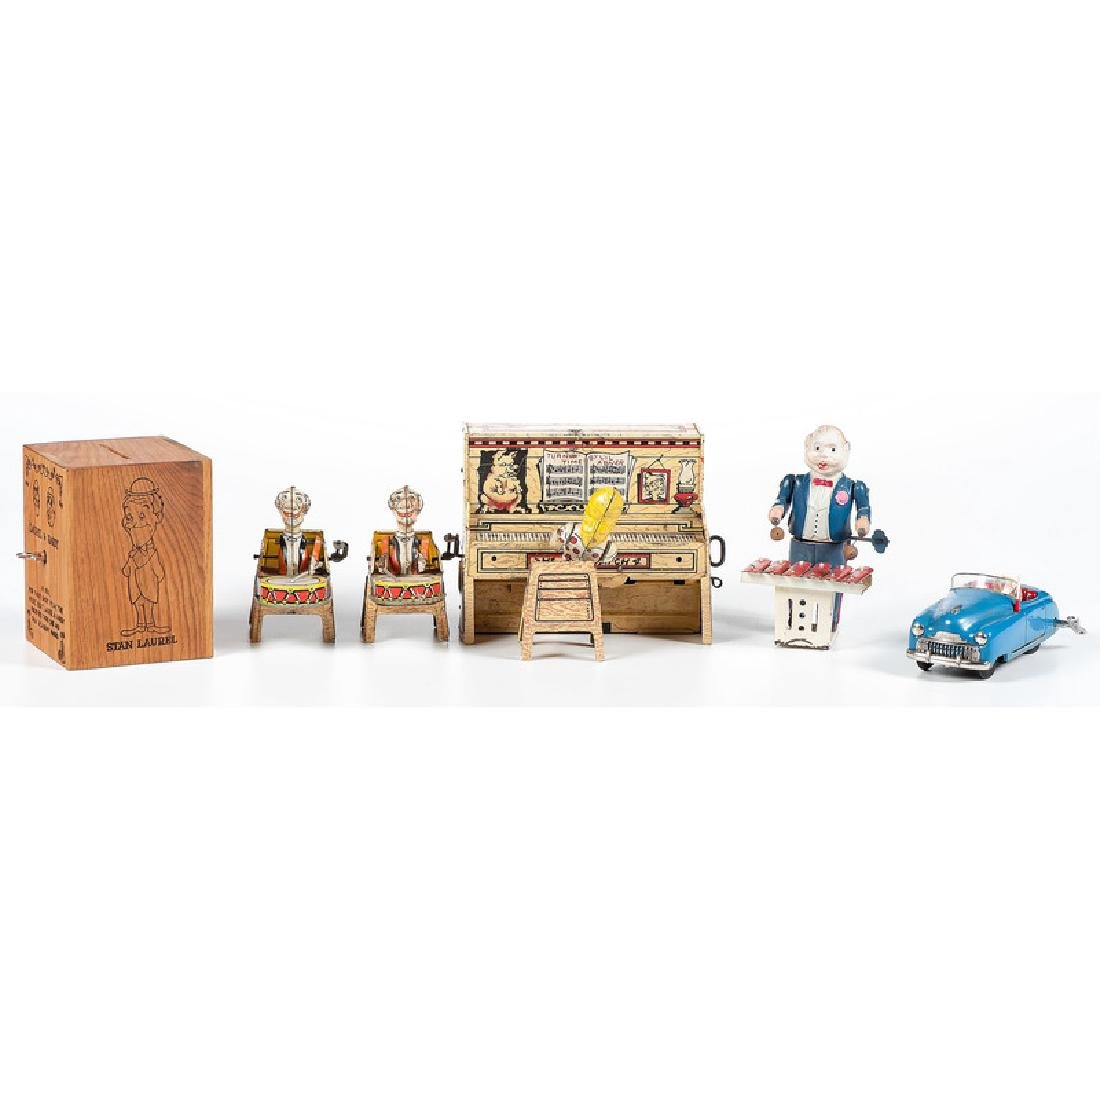 Group of Musical Toys, Including L'il Abner Band and